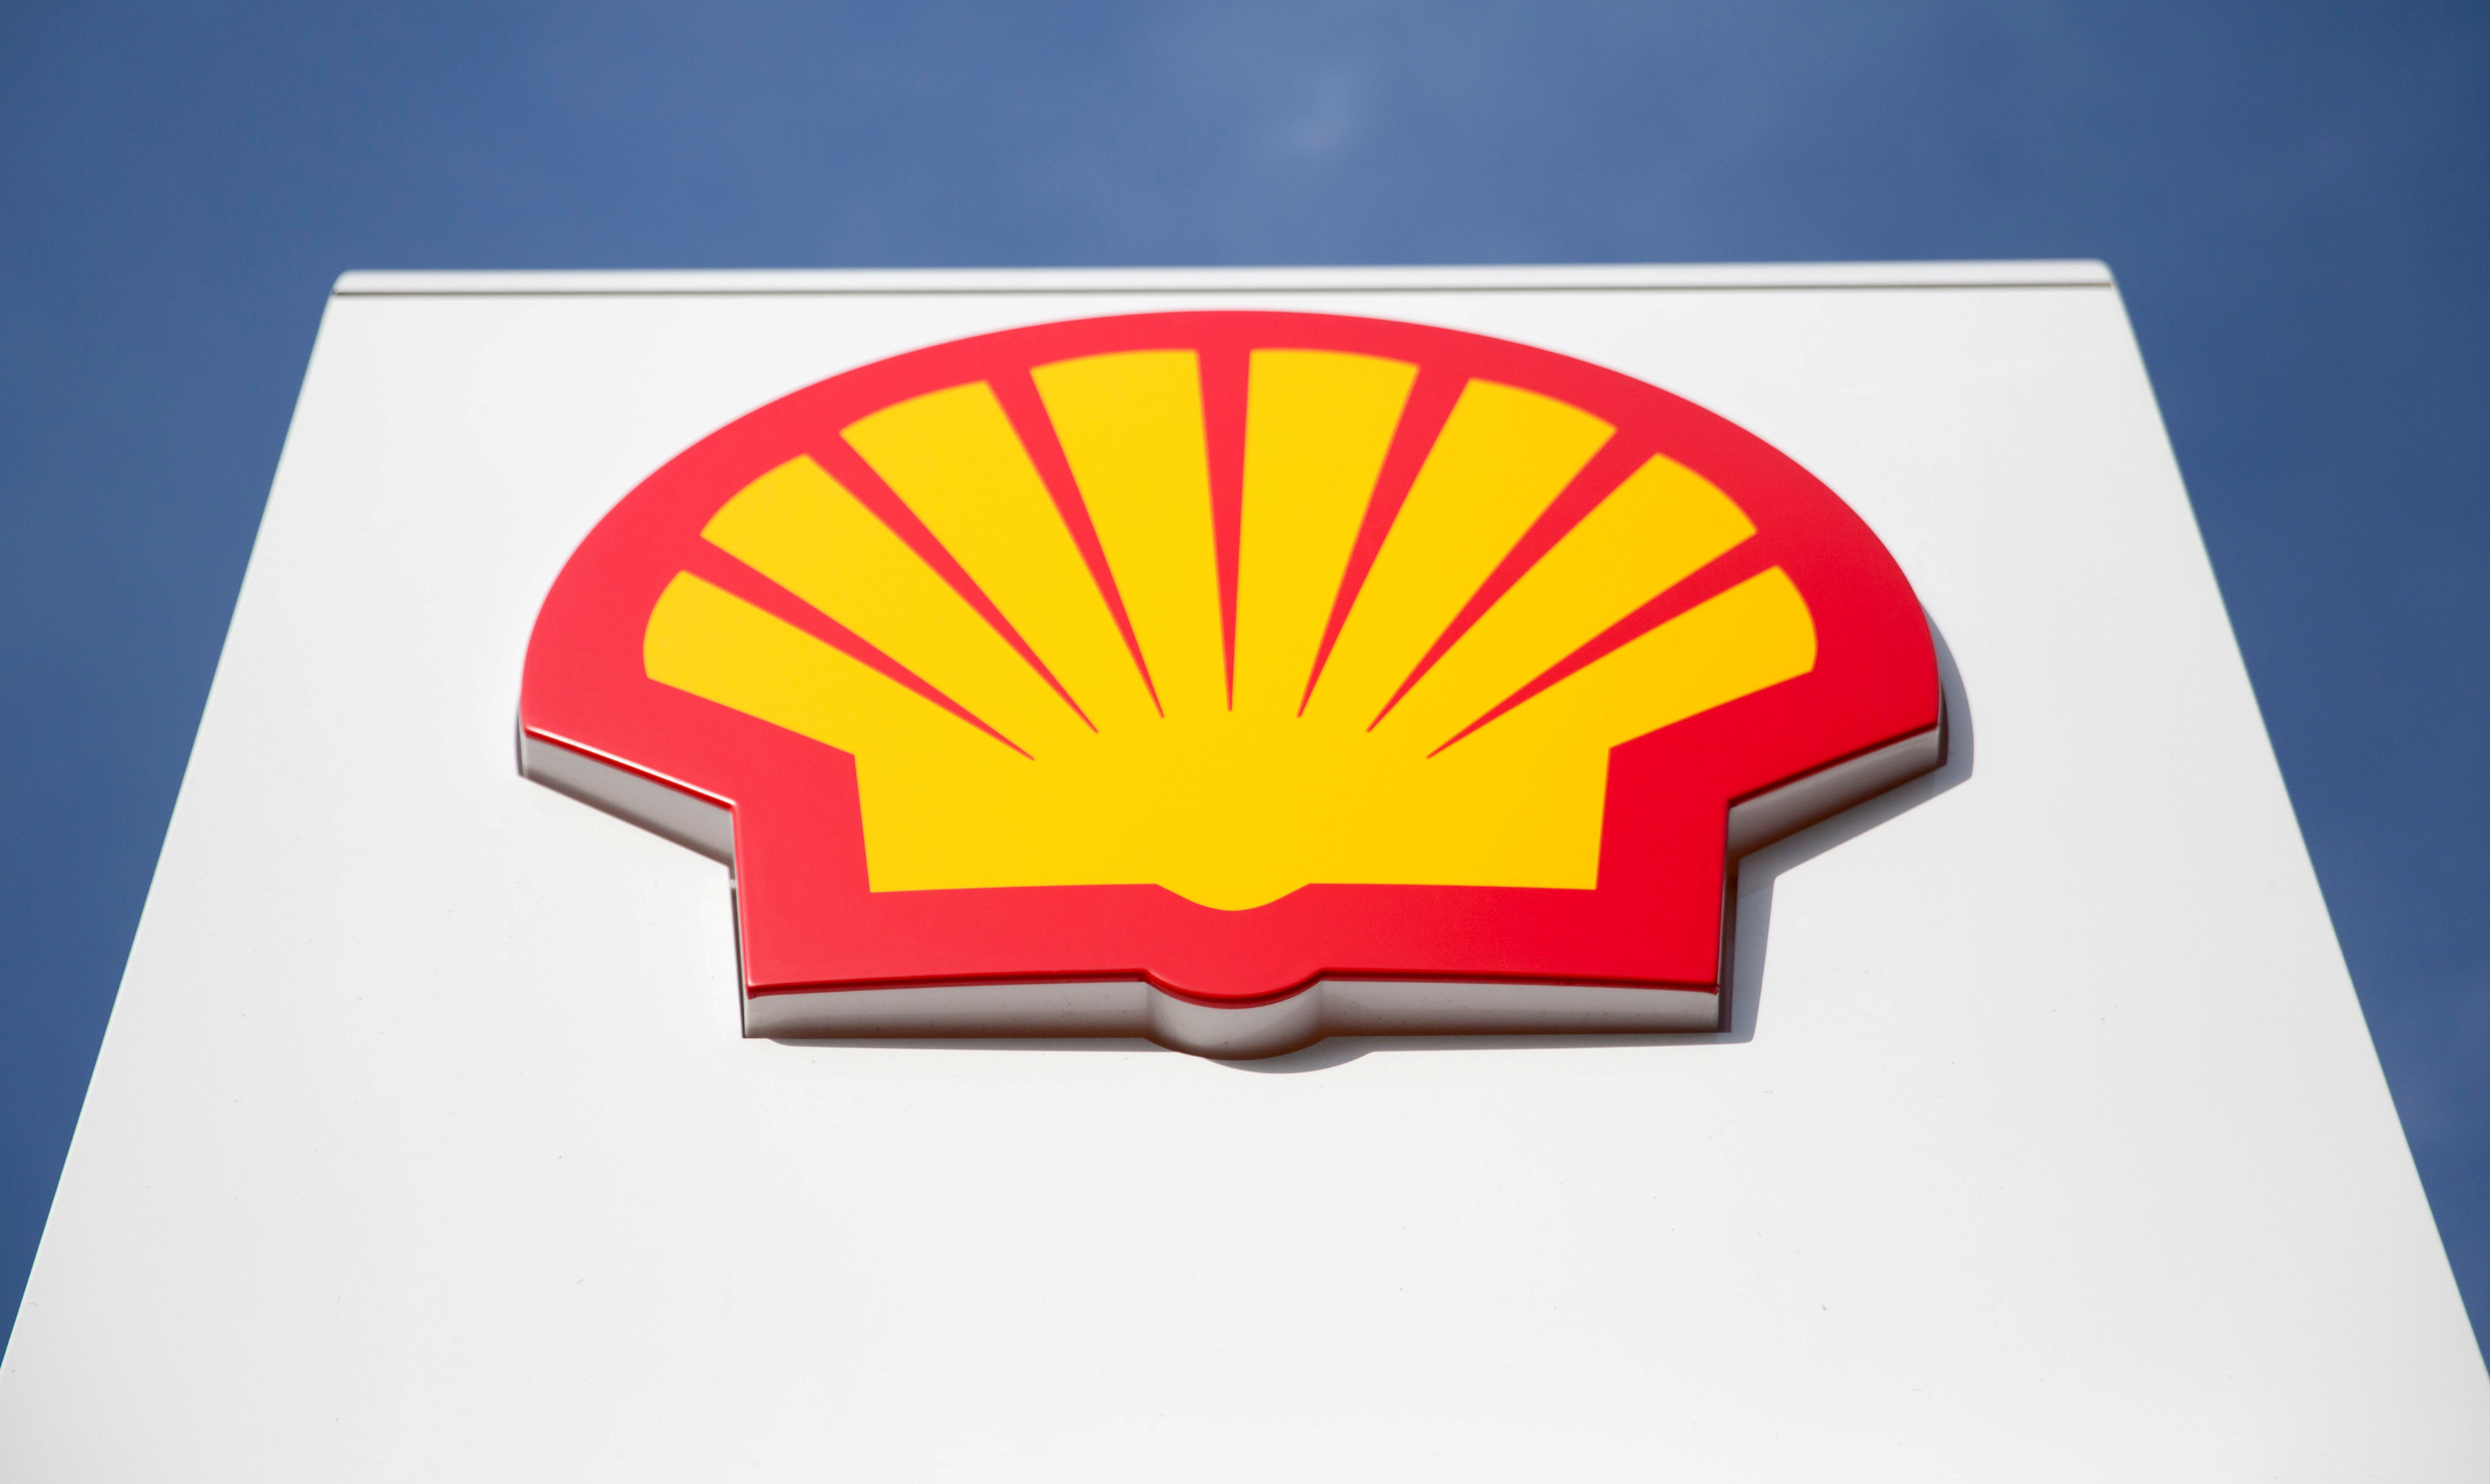 Shell cuts 2020 spending by US$5b, suspends share buyback